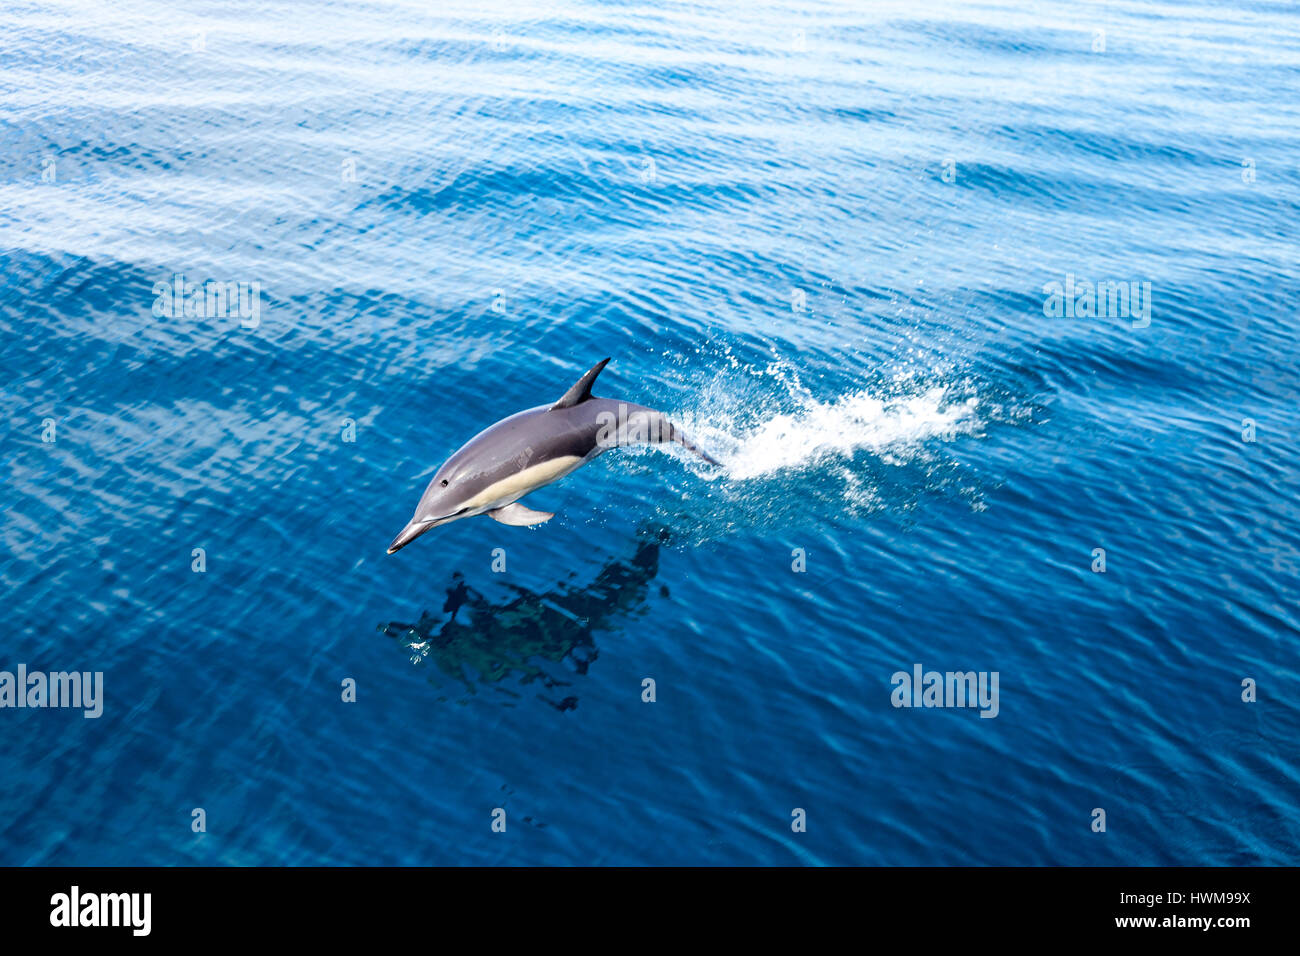 Bottlenose dolphin jumping out of the water in Hauraki Gulf Marine Park, New Zealand - Stock Image